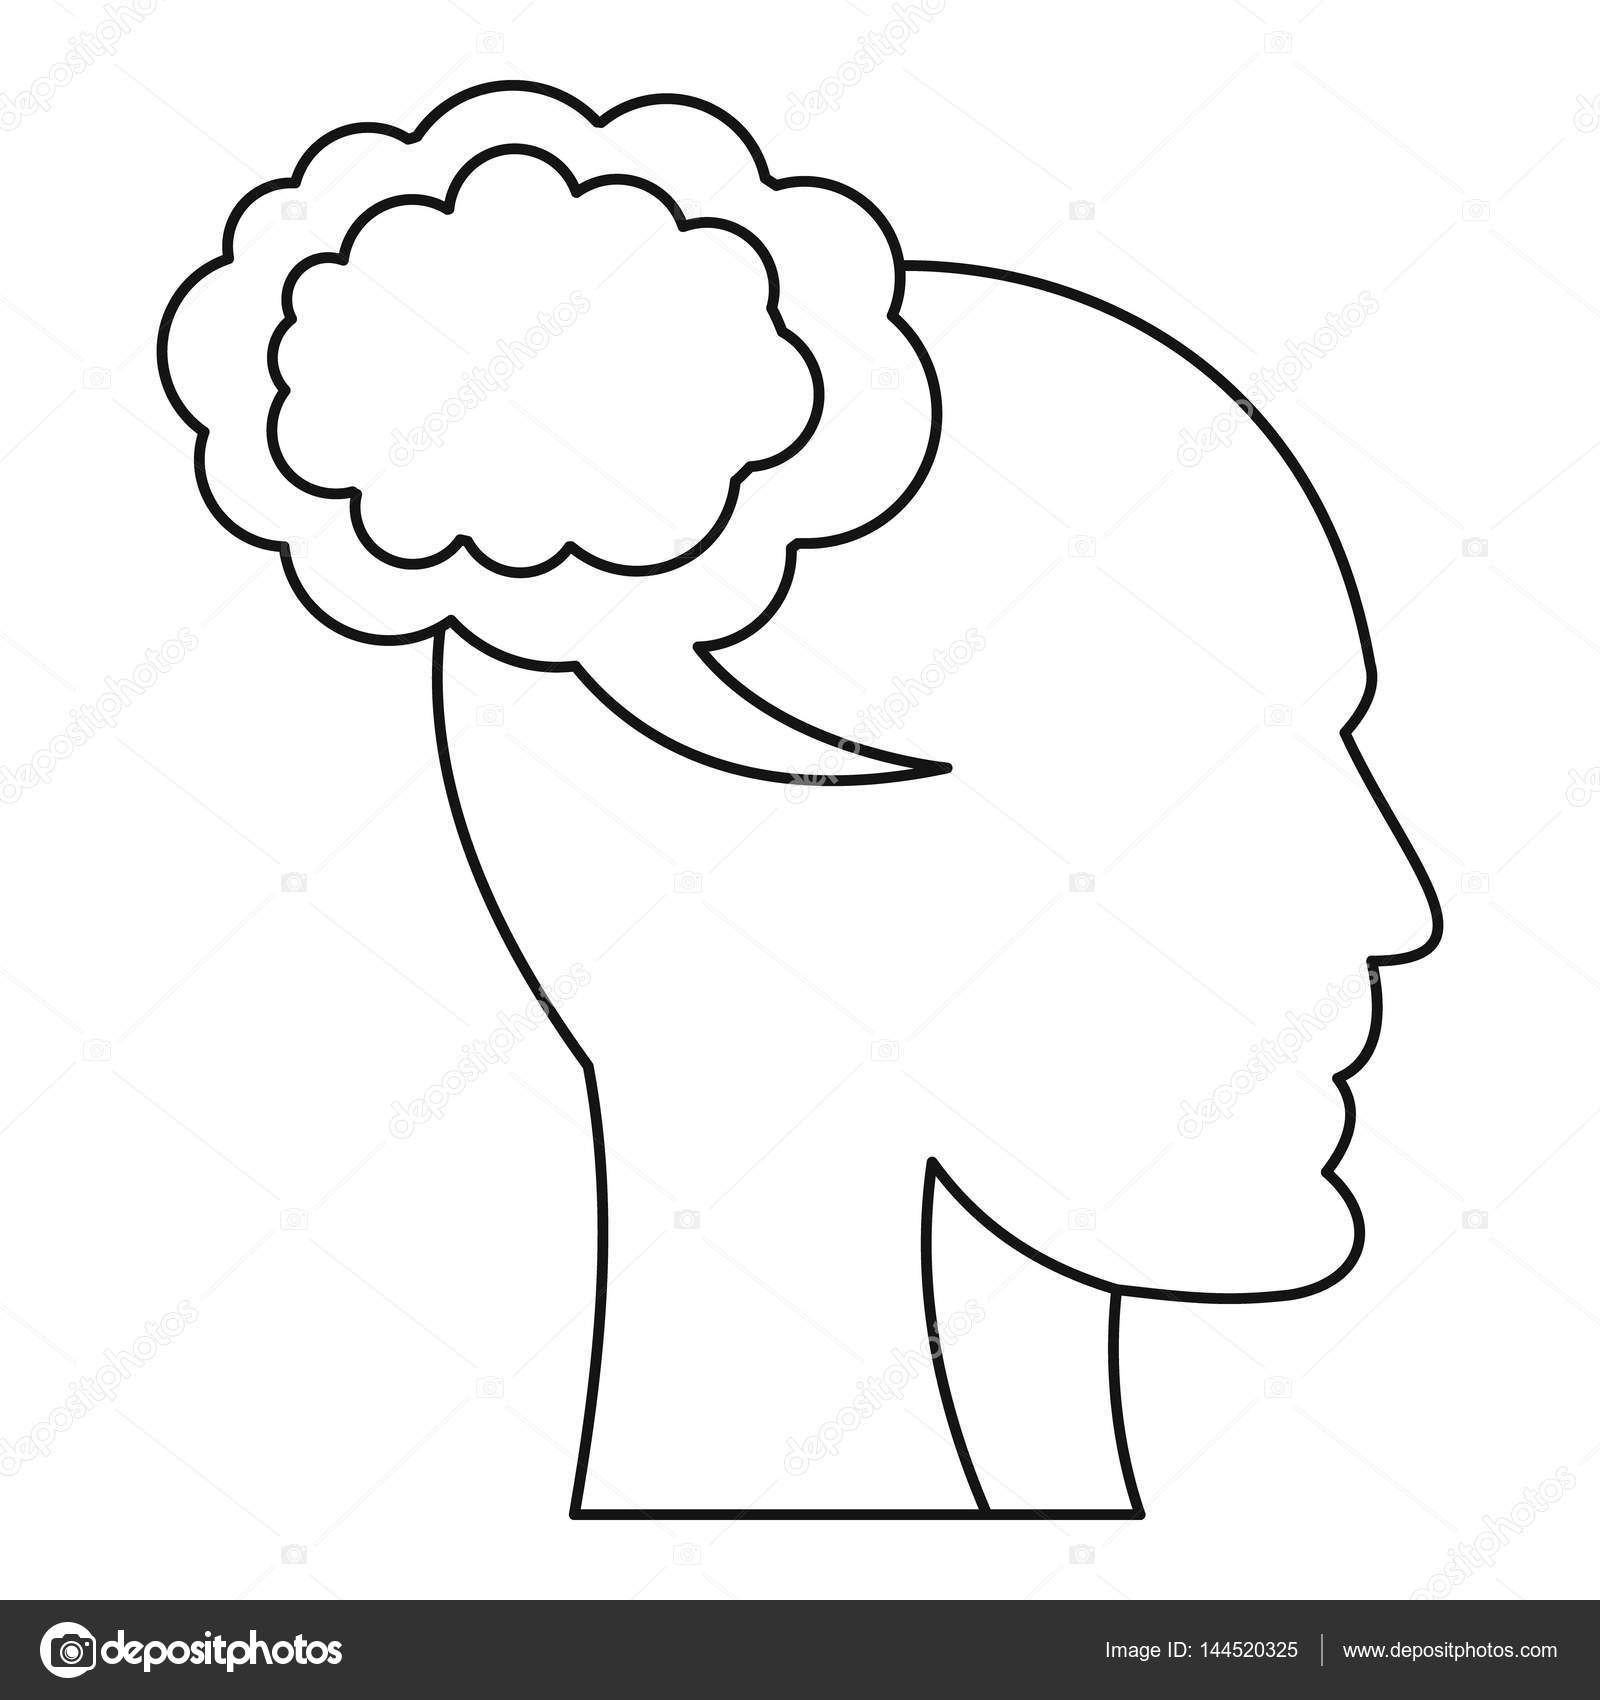 1600x1700 Cloud And Human Head Icon, Outline Style Stock Vector